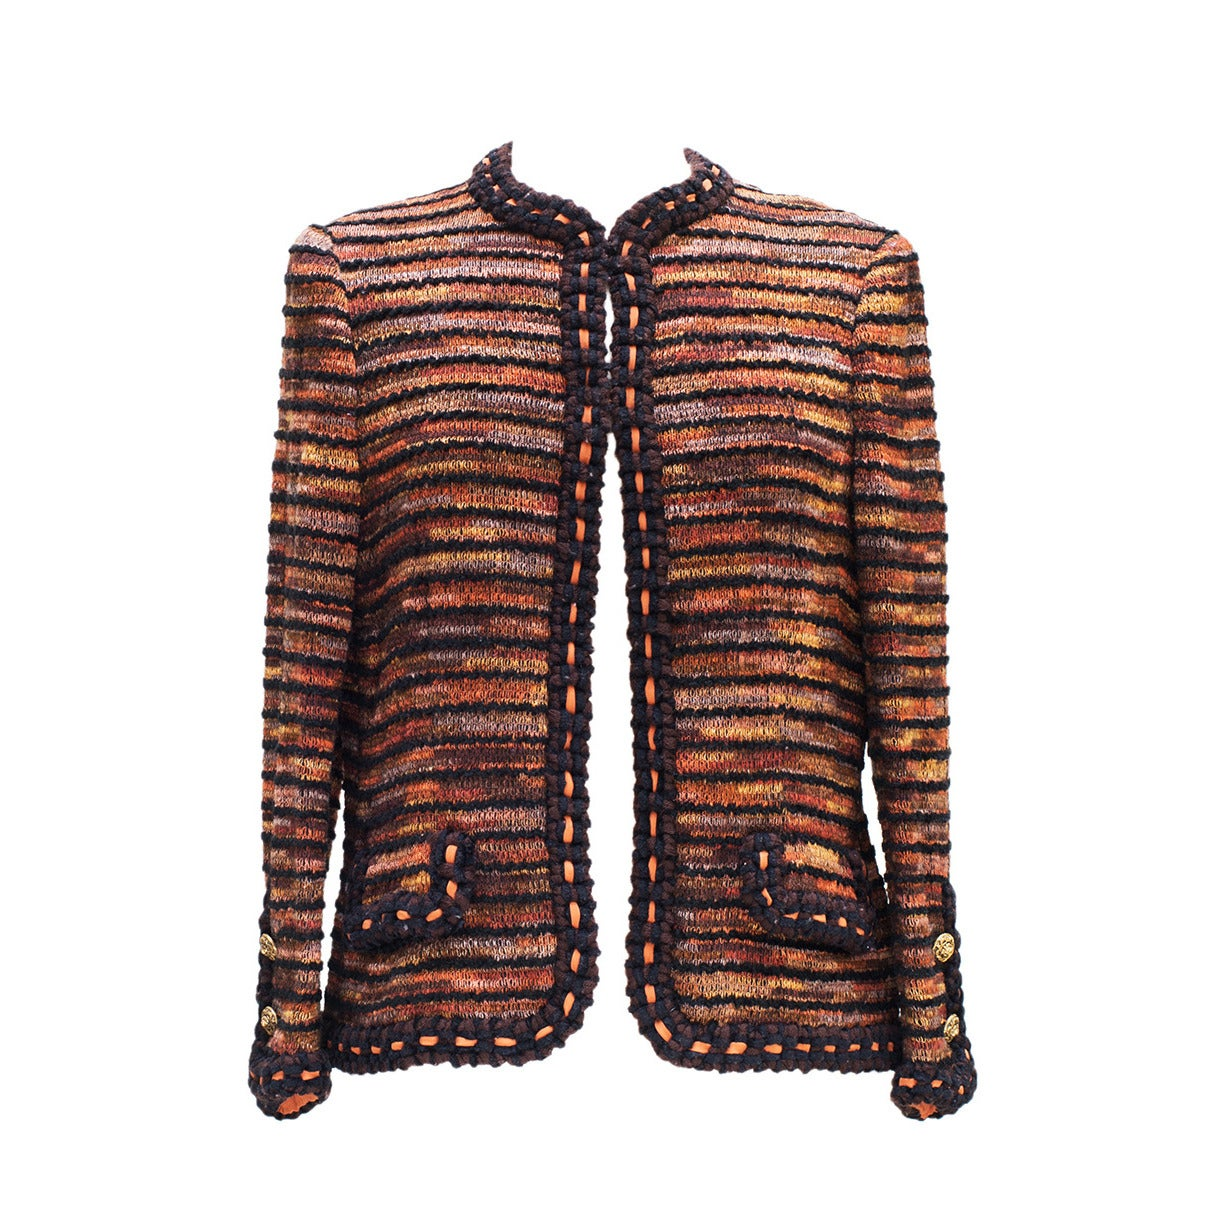 Chanel Haute-Couture  1960 -1970 Vintage Tweed Jacket and the skirt 